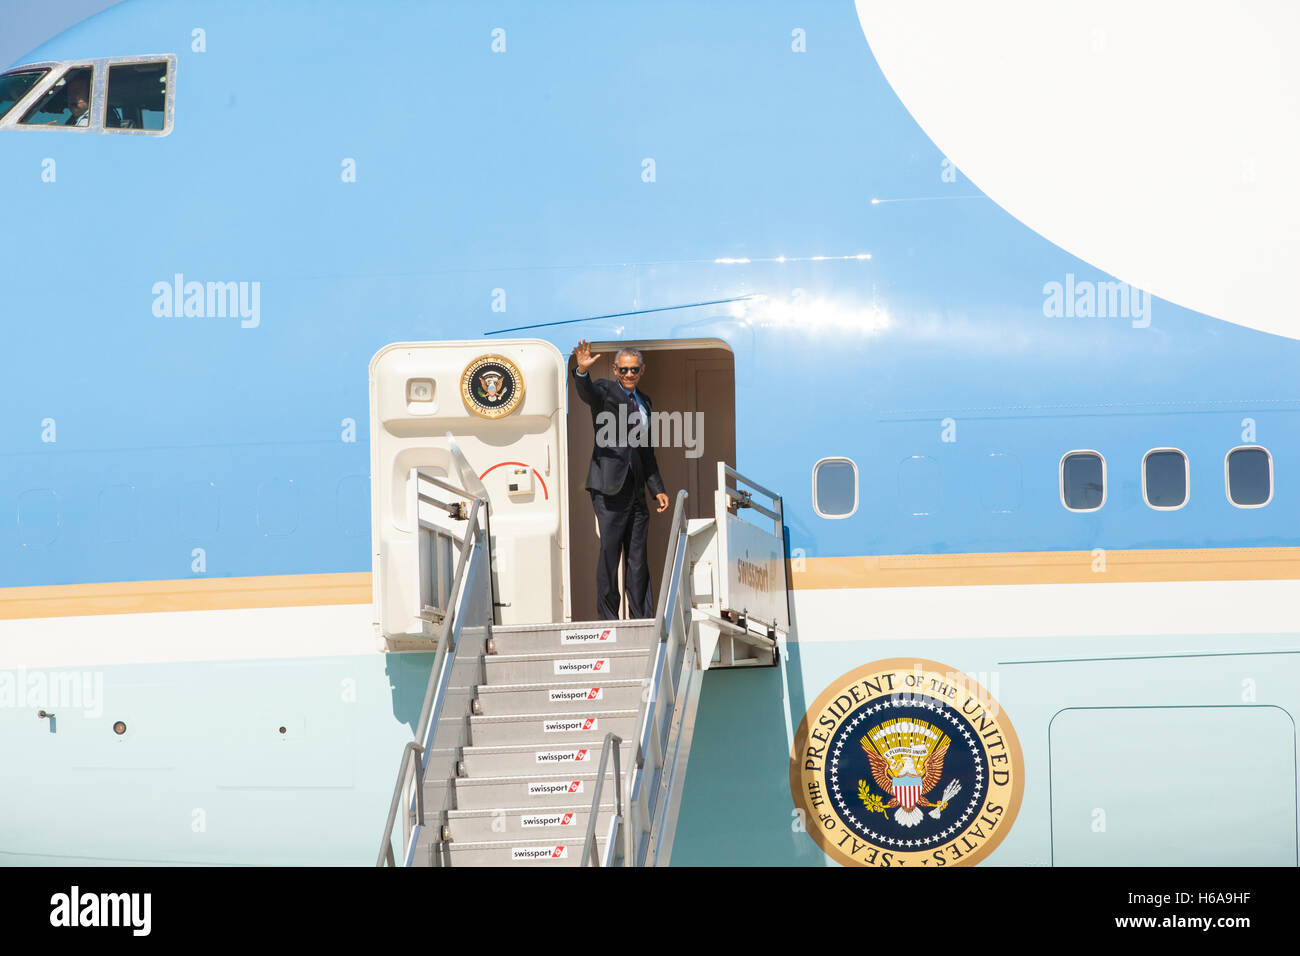 President Barack Obama departs from LAX International Airport on October 25, 2016 in Los Angeles, California. - Stock Image